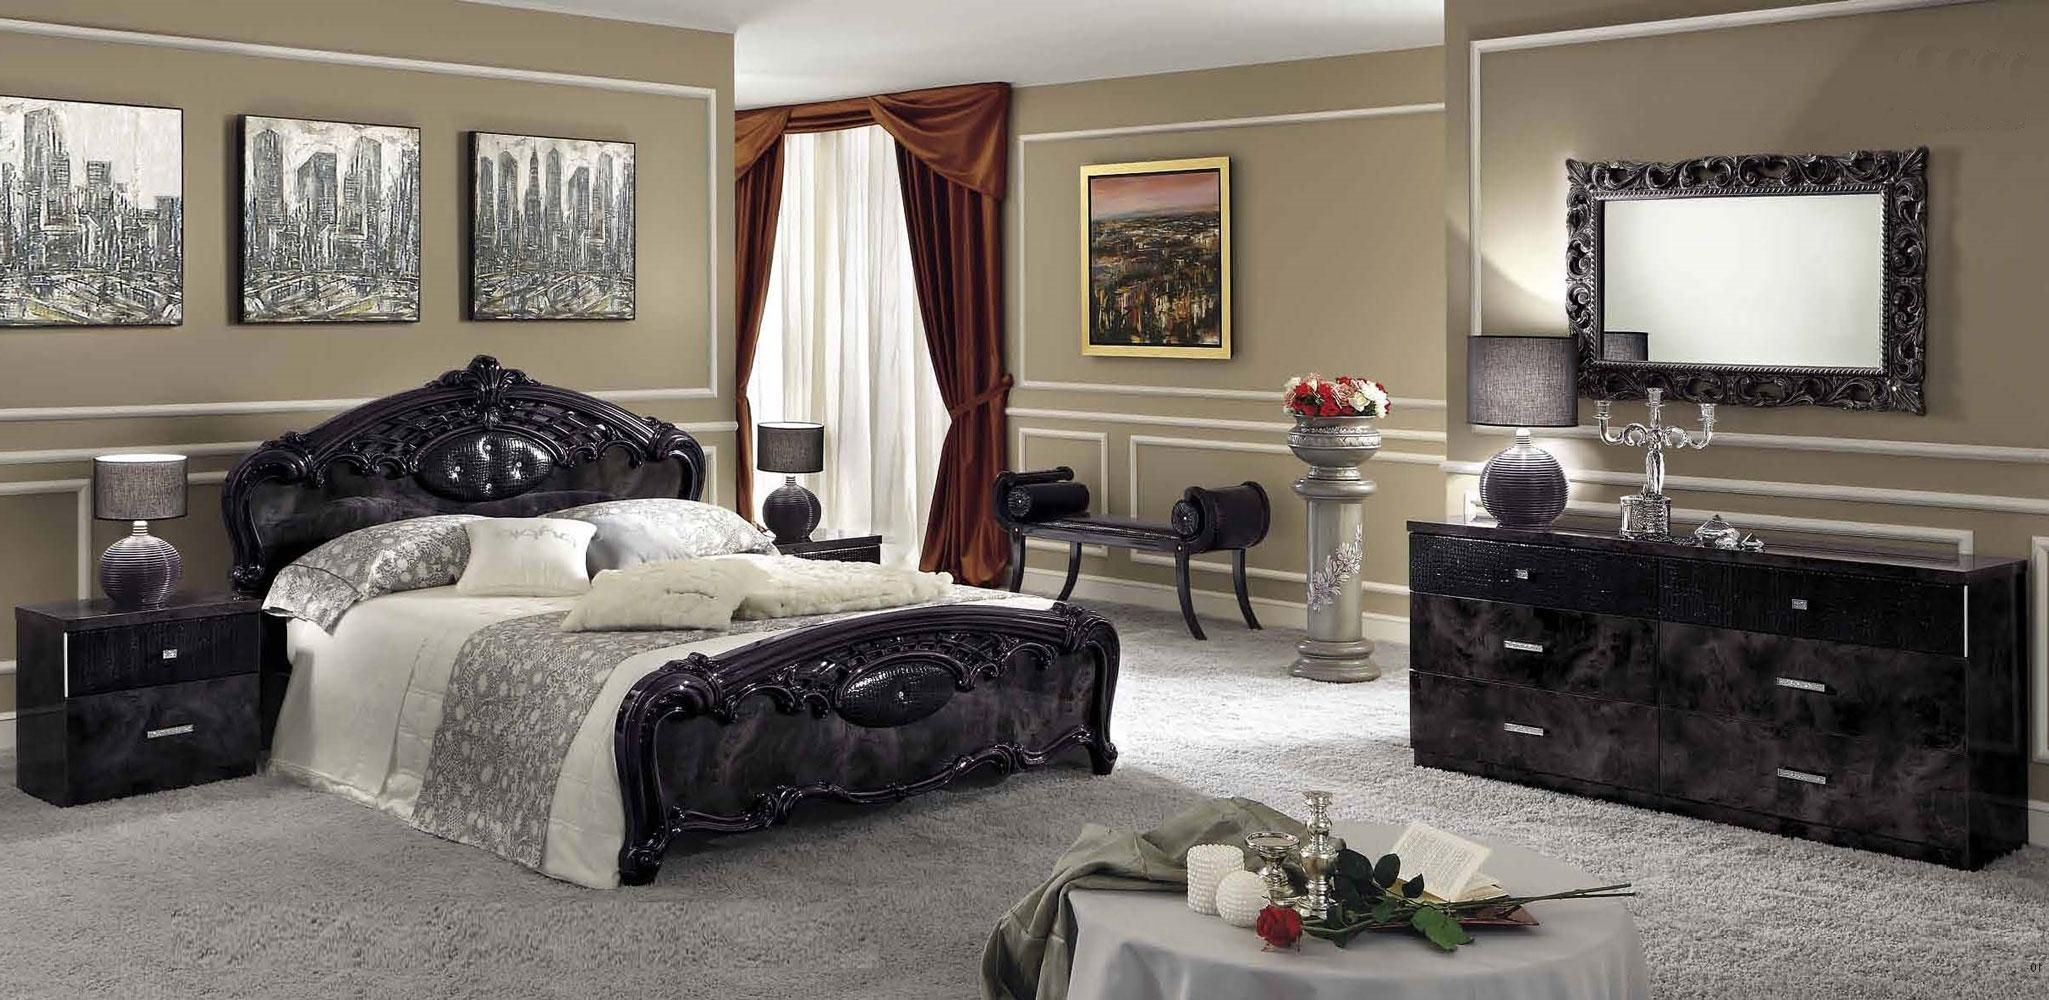 Italian bedroom decor - Sexy Swanky Italian Moda Bedroom Set